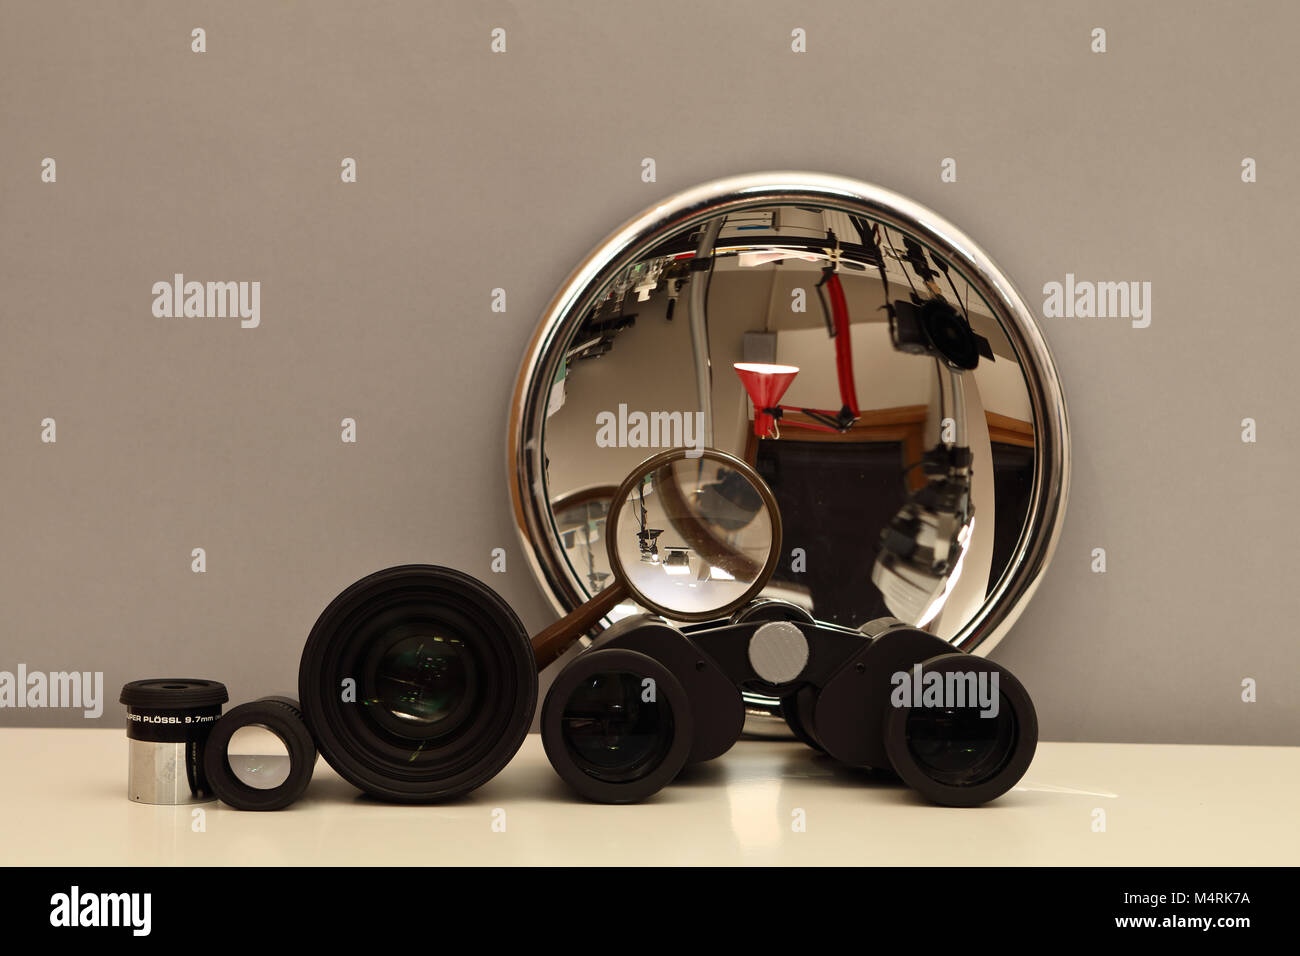 Optics - still life - Stock Image